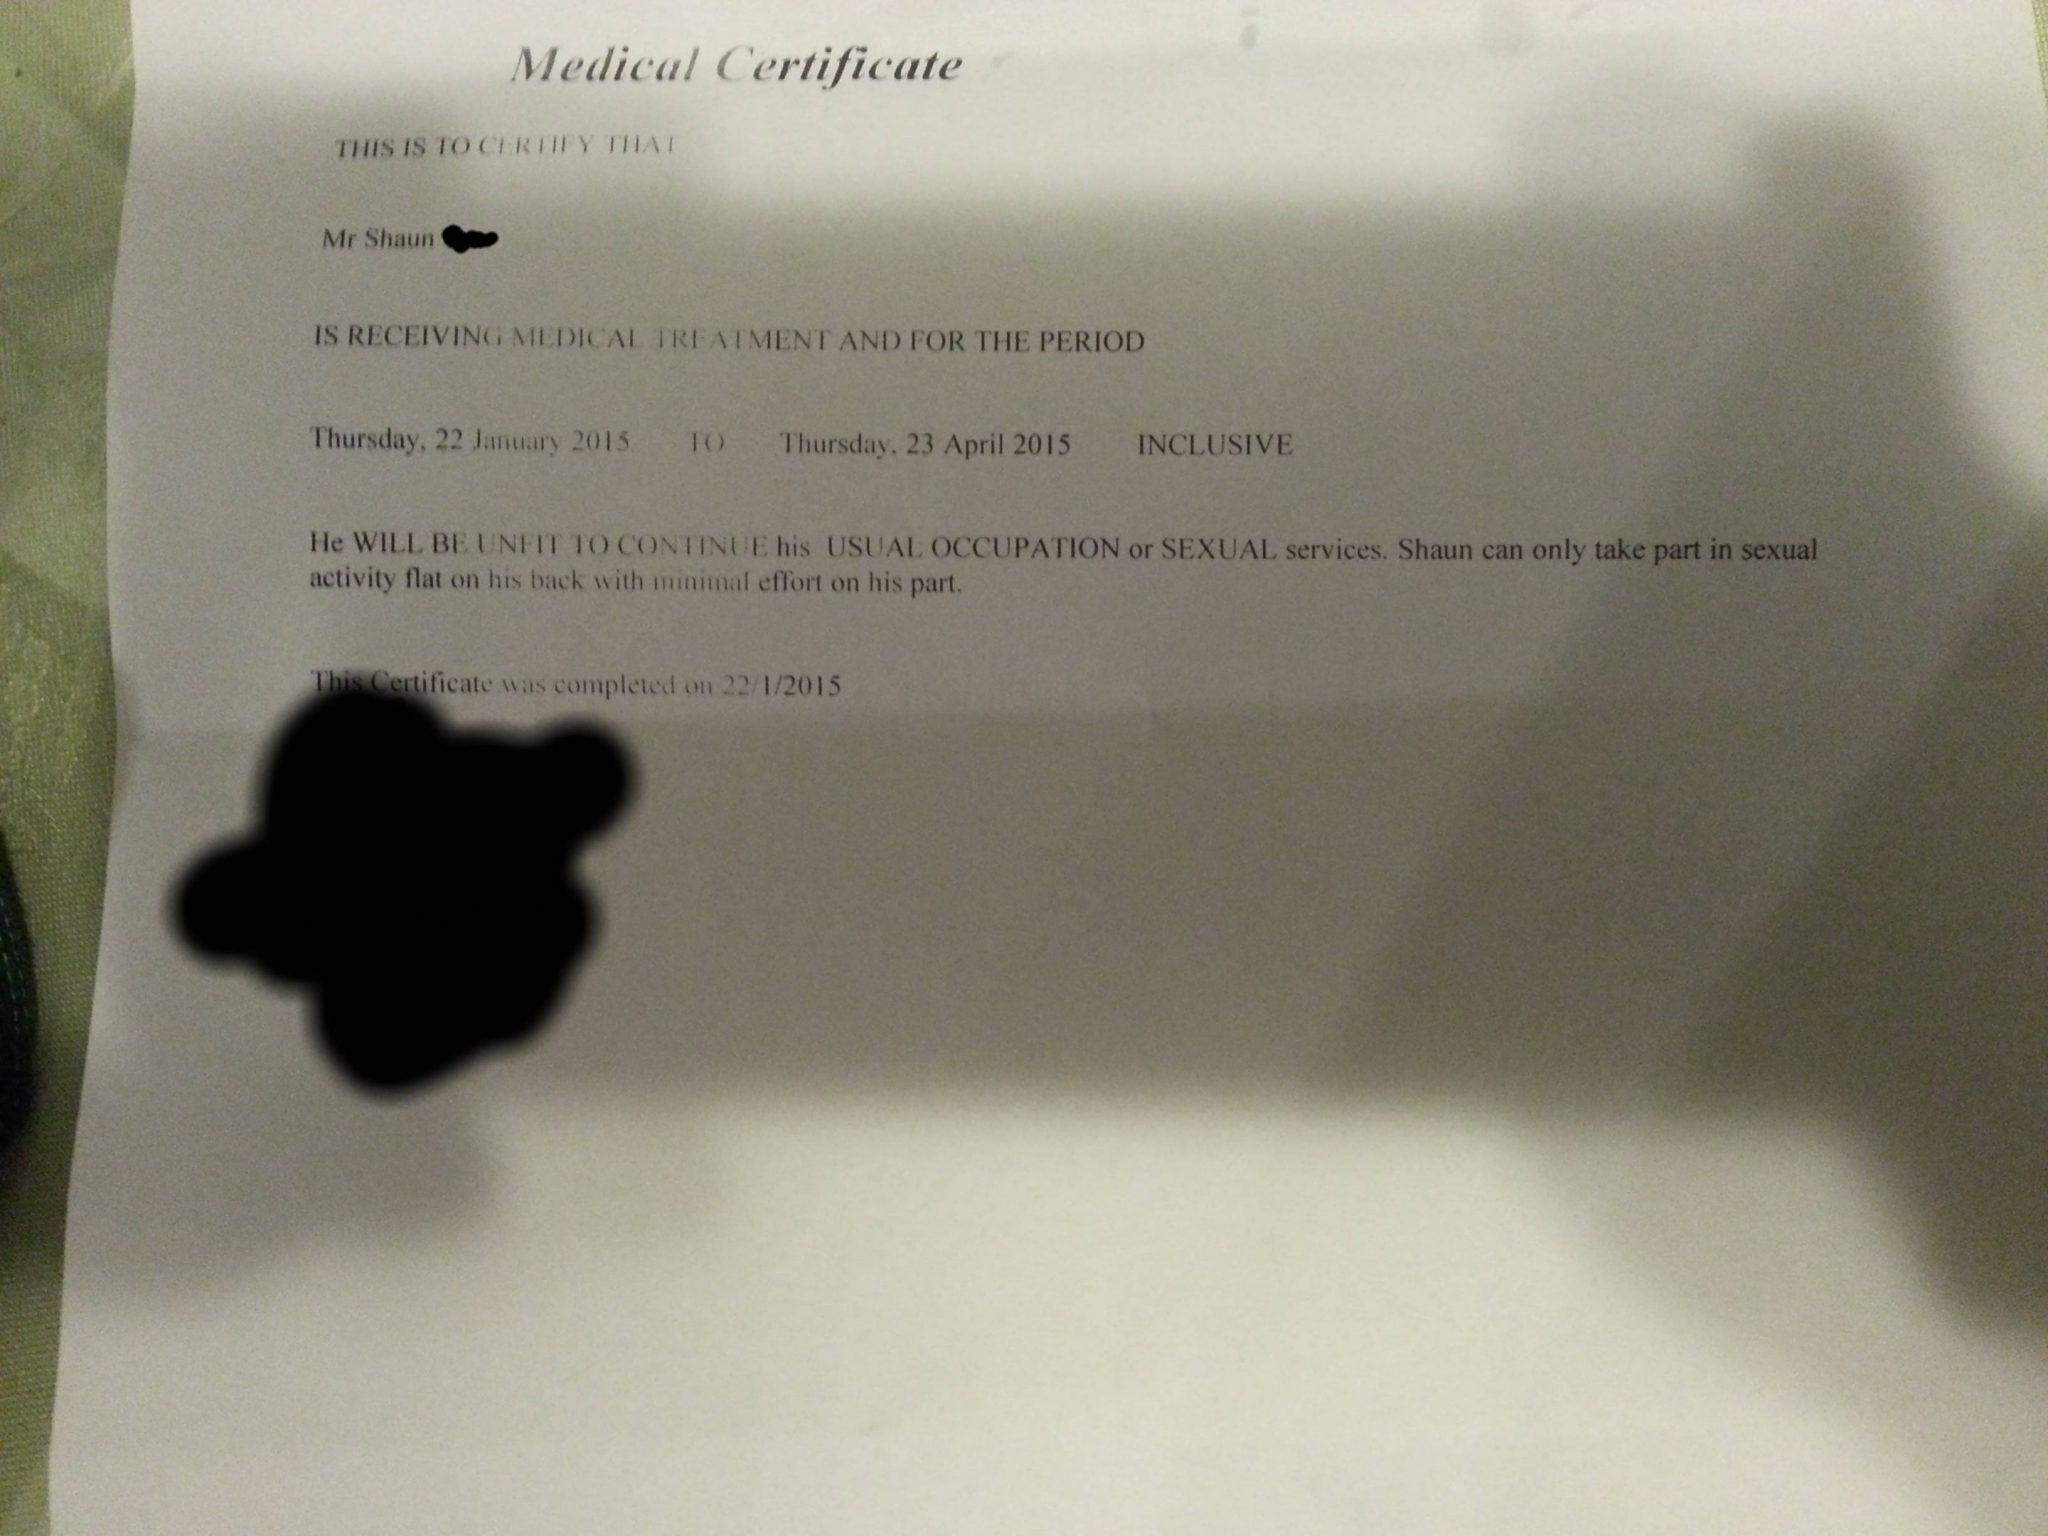 medical certificate for exertion free sex